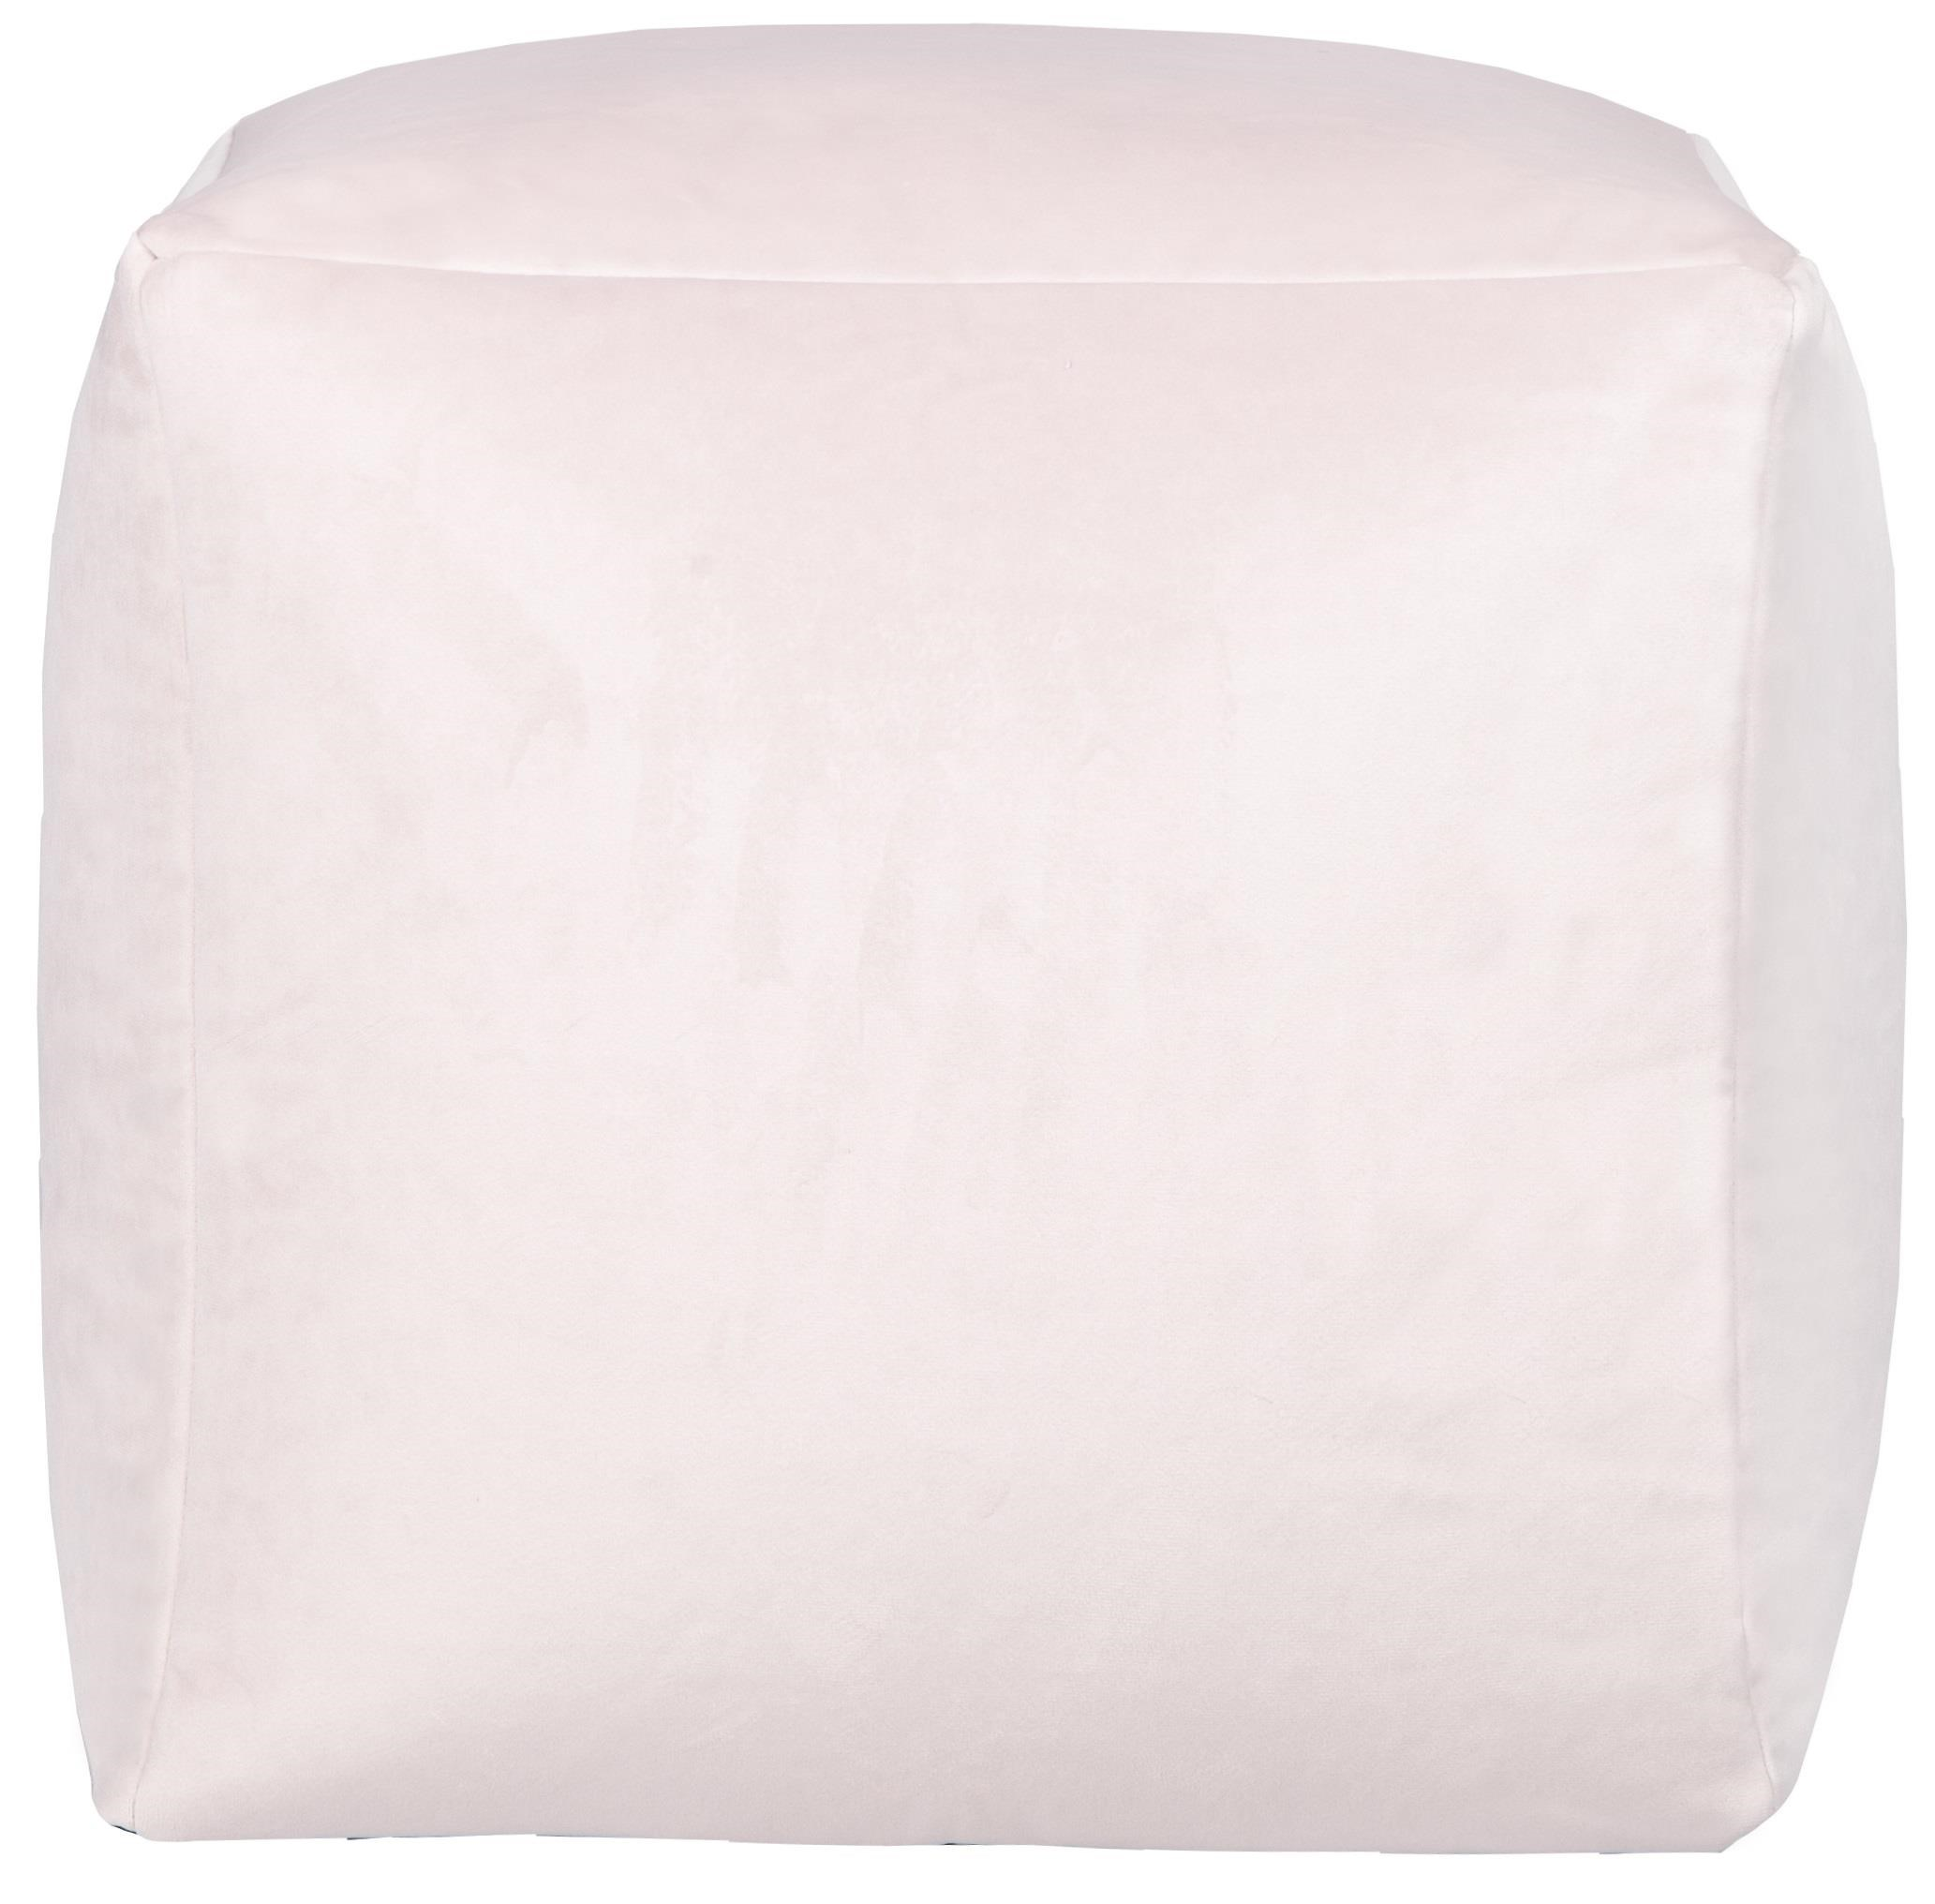 Beanbag Cream Cube Beanbag by Lazy Life Paris at Red Knot